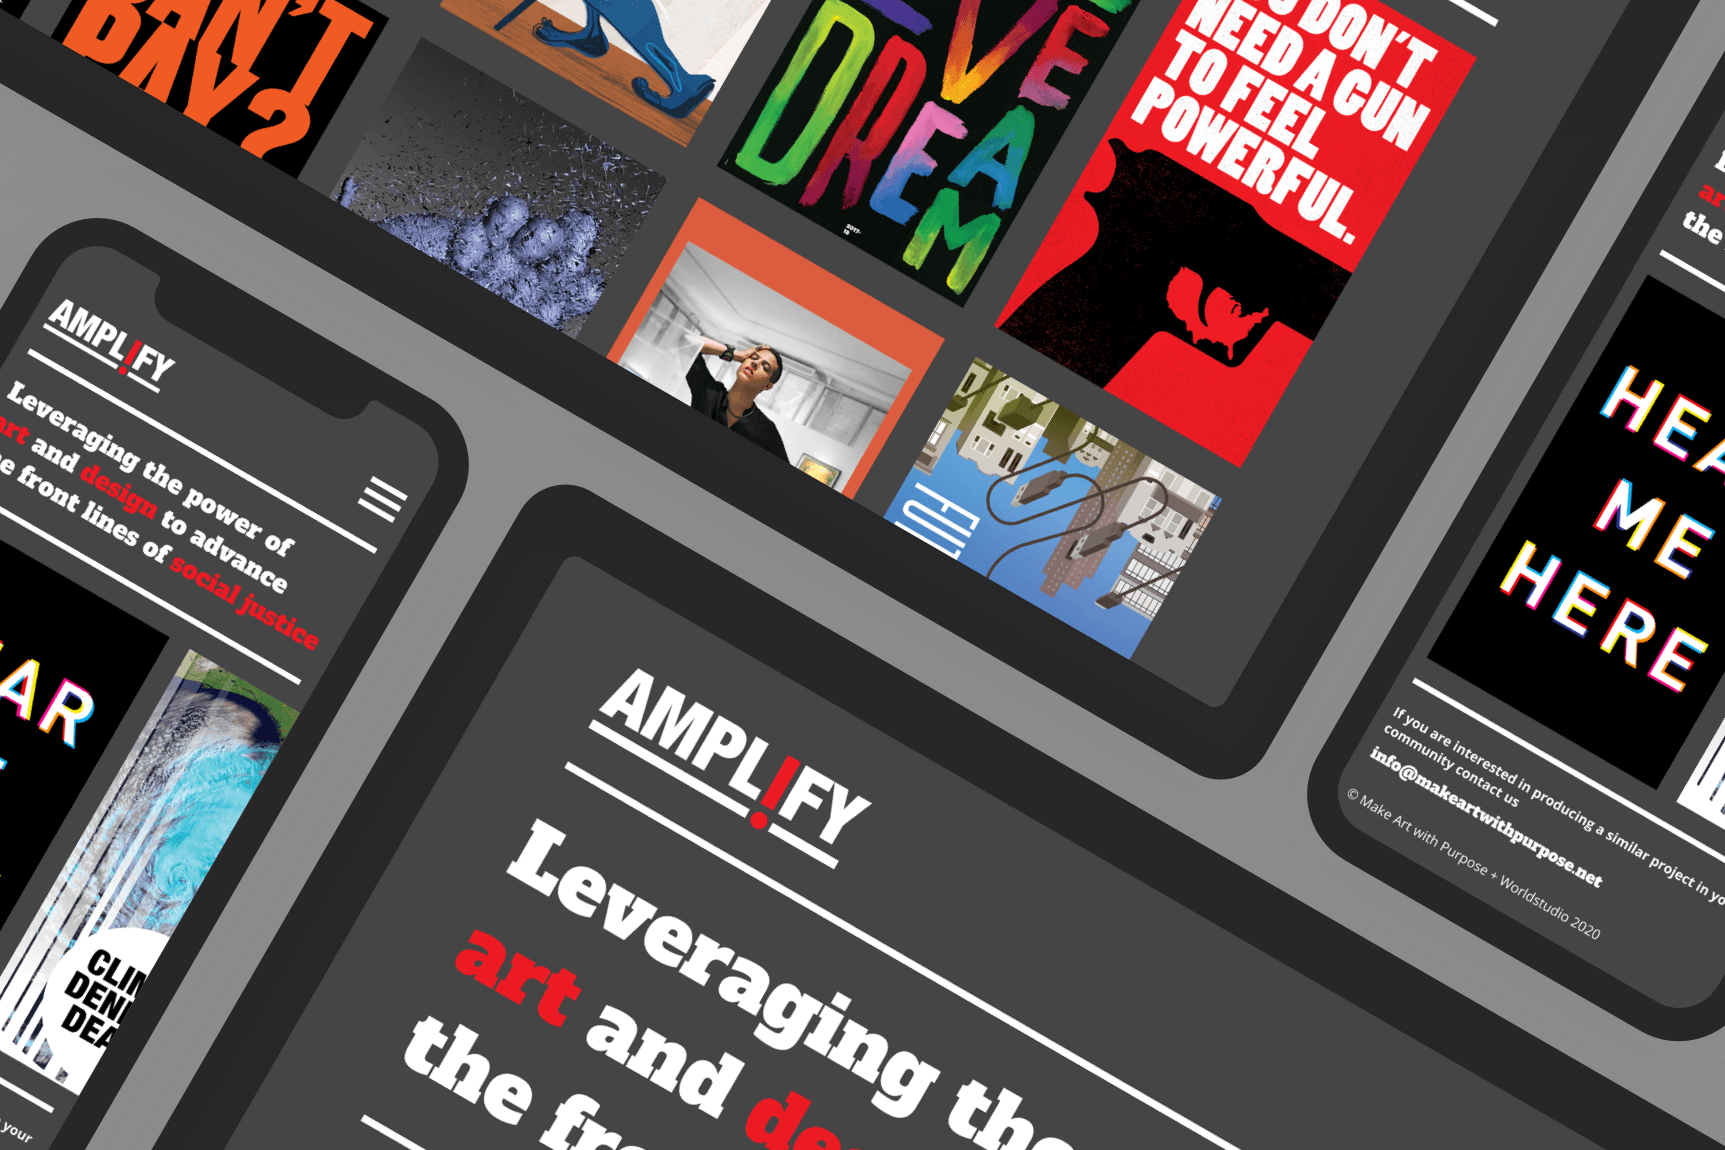 amplify mocked up on a tablet and phone